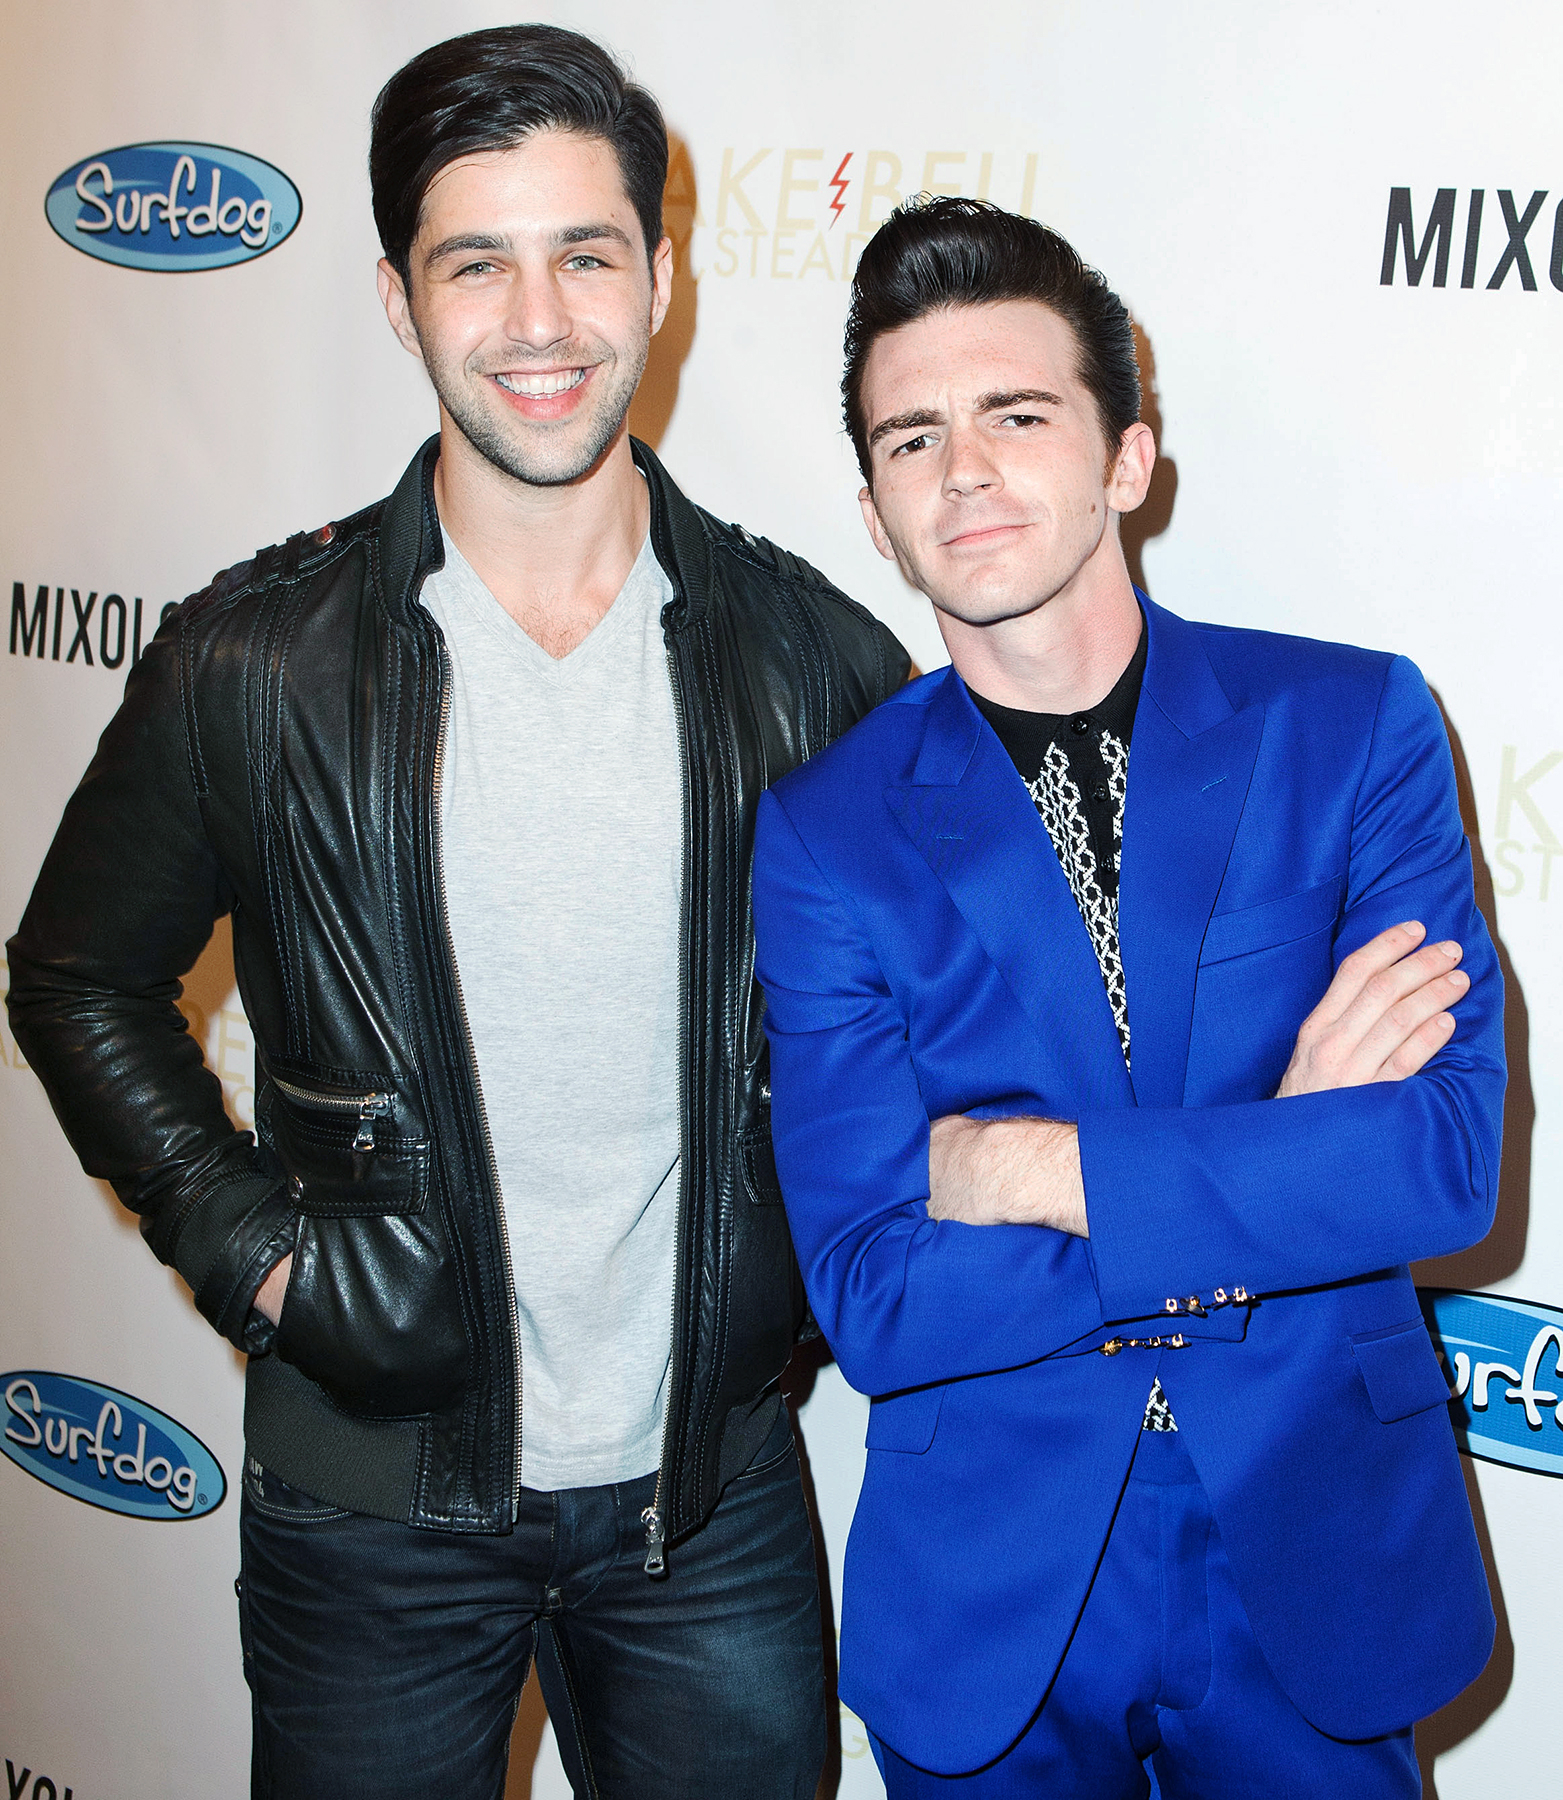 Drake Bell Josh Peck - From dynamic duo to frenemies! Drake Bell and Josh Peck skyrocketed to fame after their hit Nickelodeon sitcom Drake & Josh premiered in 2004.